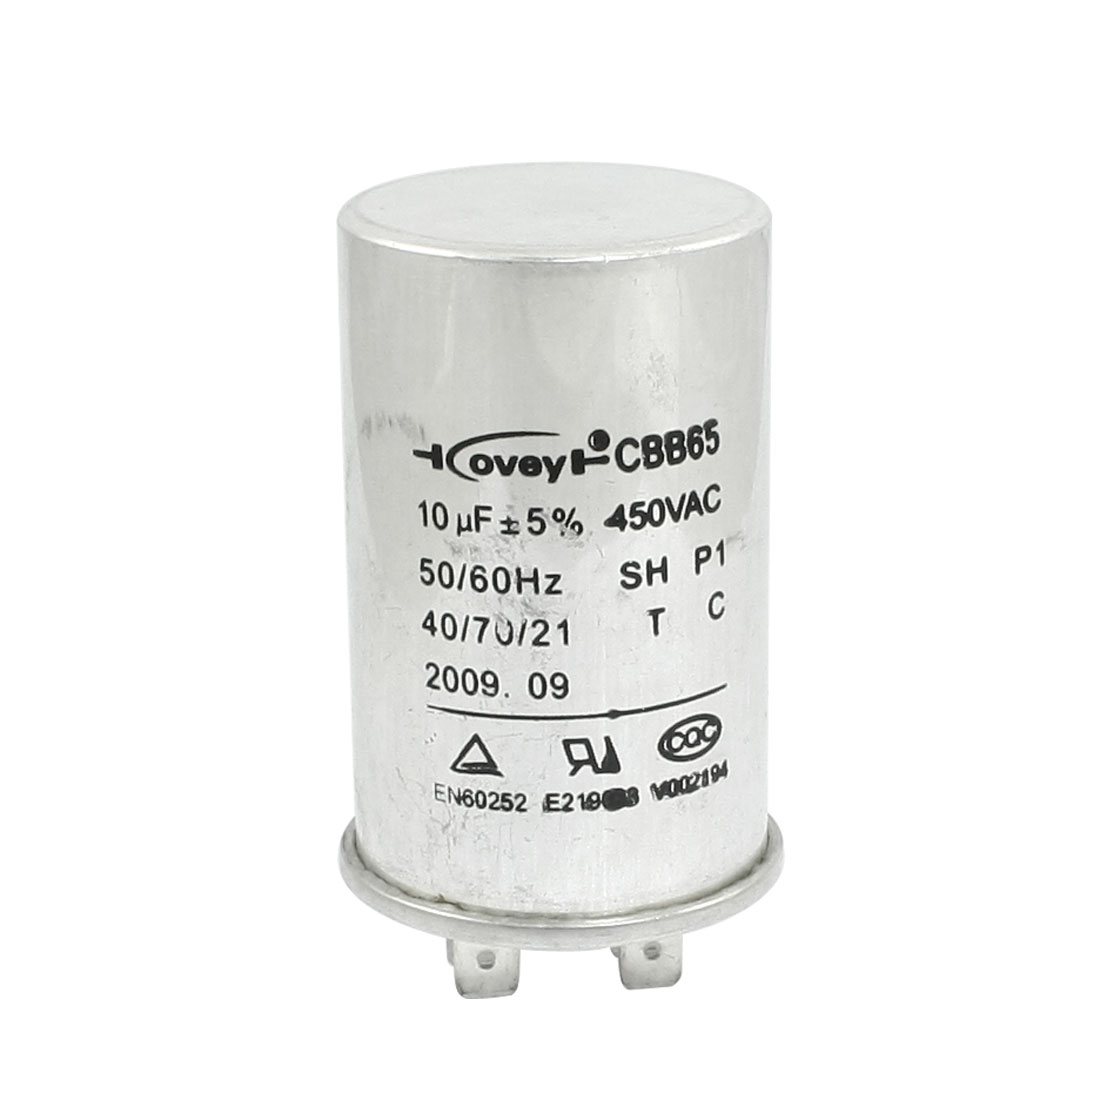 CBB65 450VAC 10uF Motor Run Metallized Polypropylene Capacitor